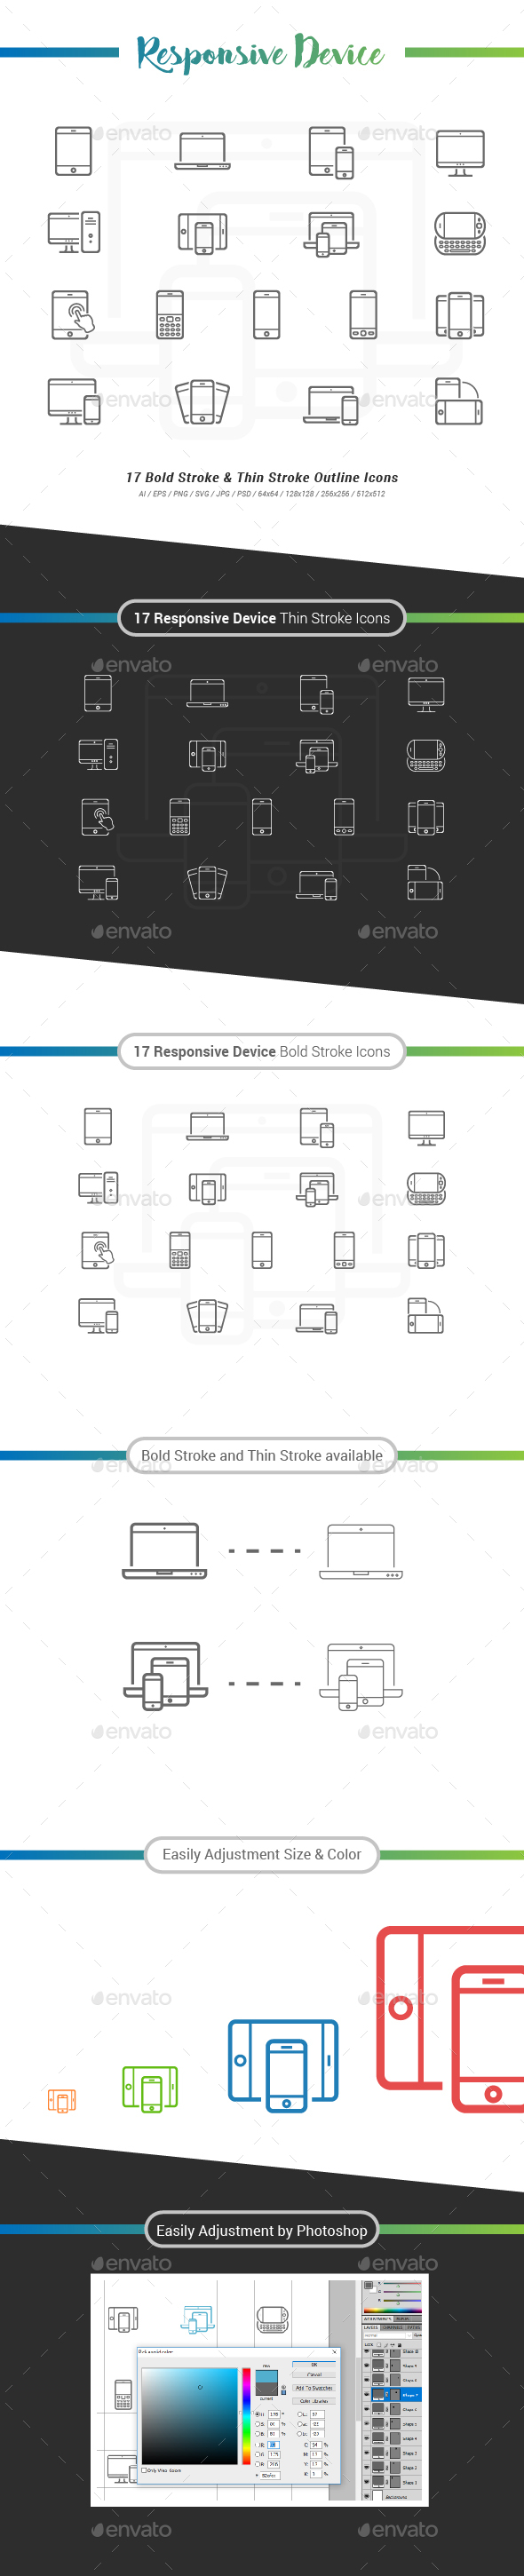 Responsive Device Outline Icon - Technology Icons